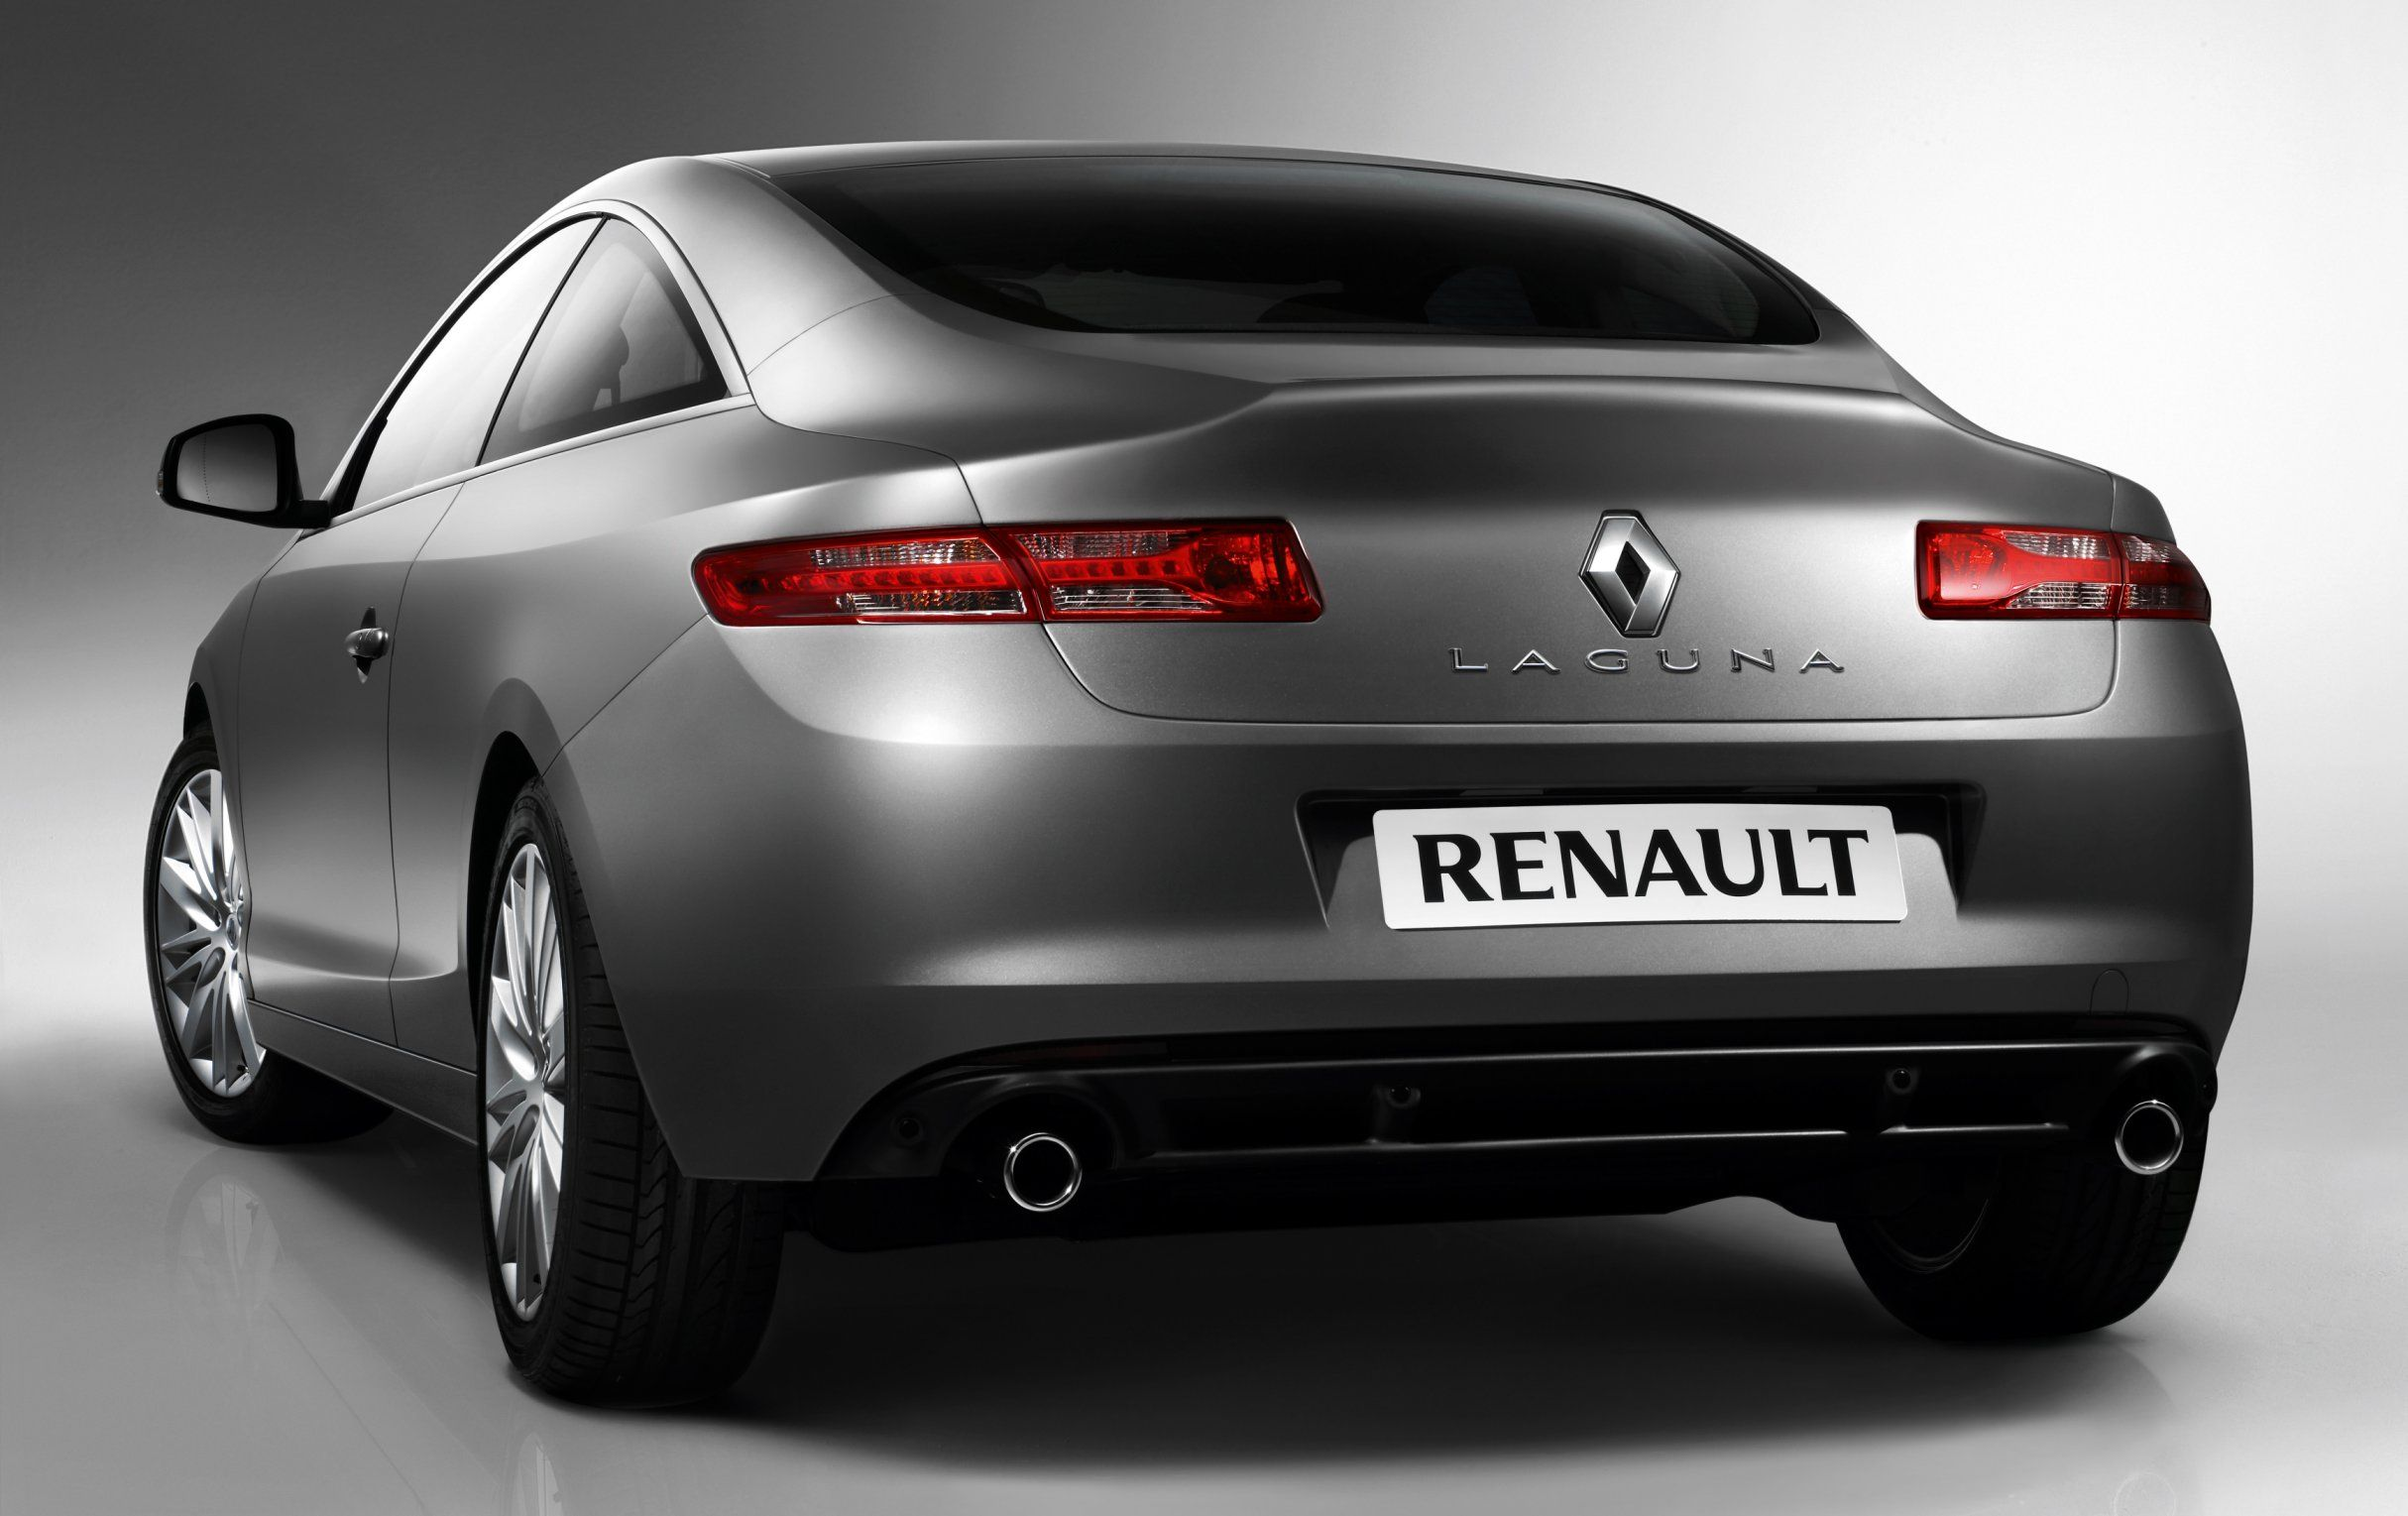 renault laguna coupe monaco gp limited edition only cars and cars. Black Bedroom Furniture Sets. Home Design Ideas